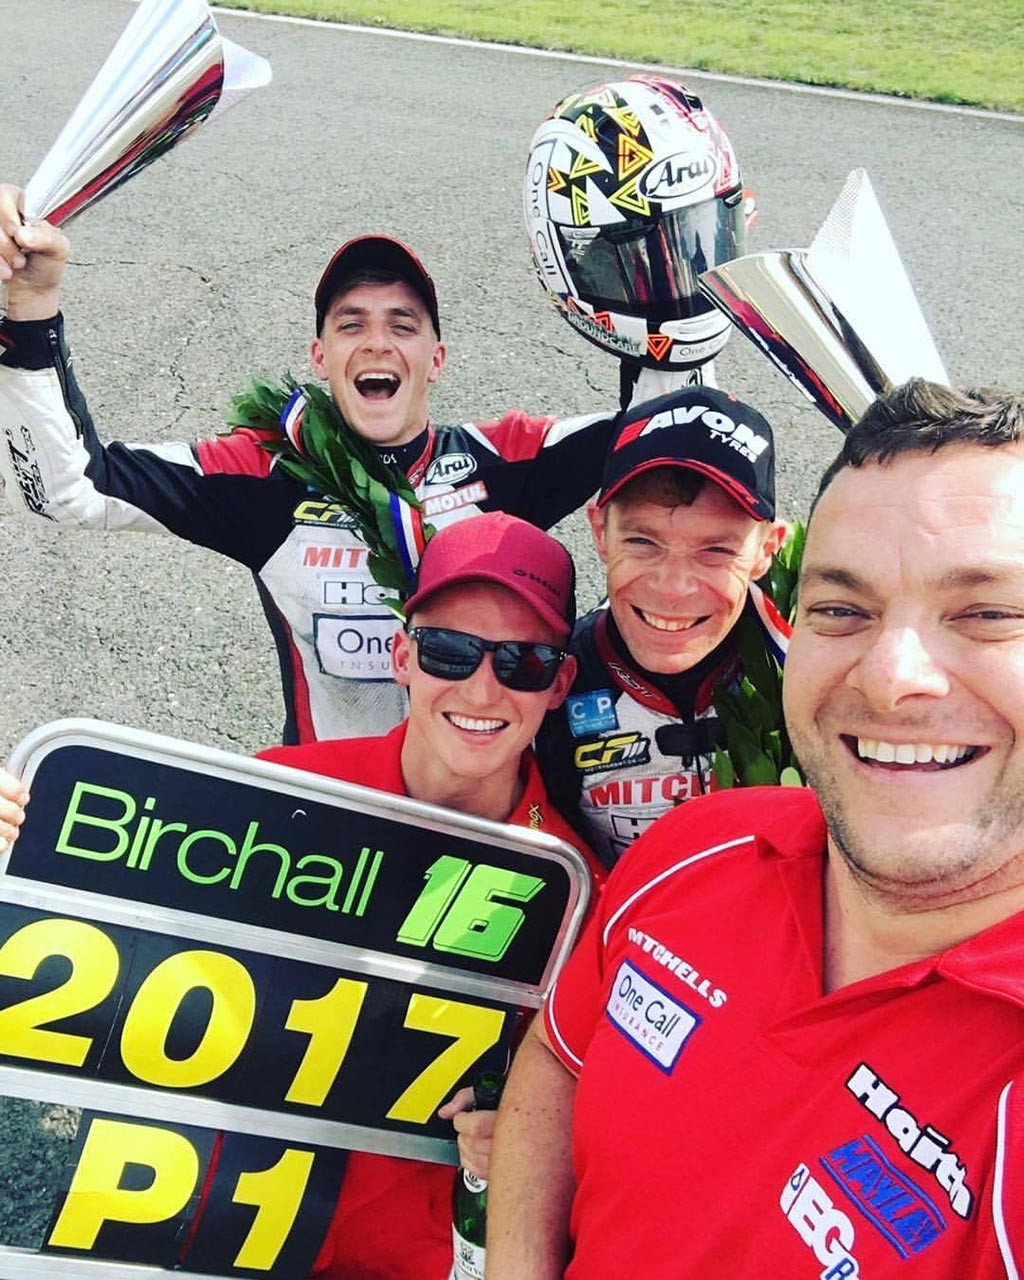 BIRCHALL BROTHERS CROWNED WORLD CHAMPIONS